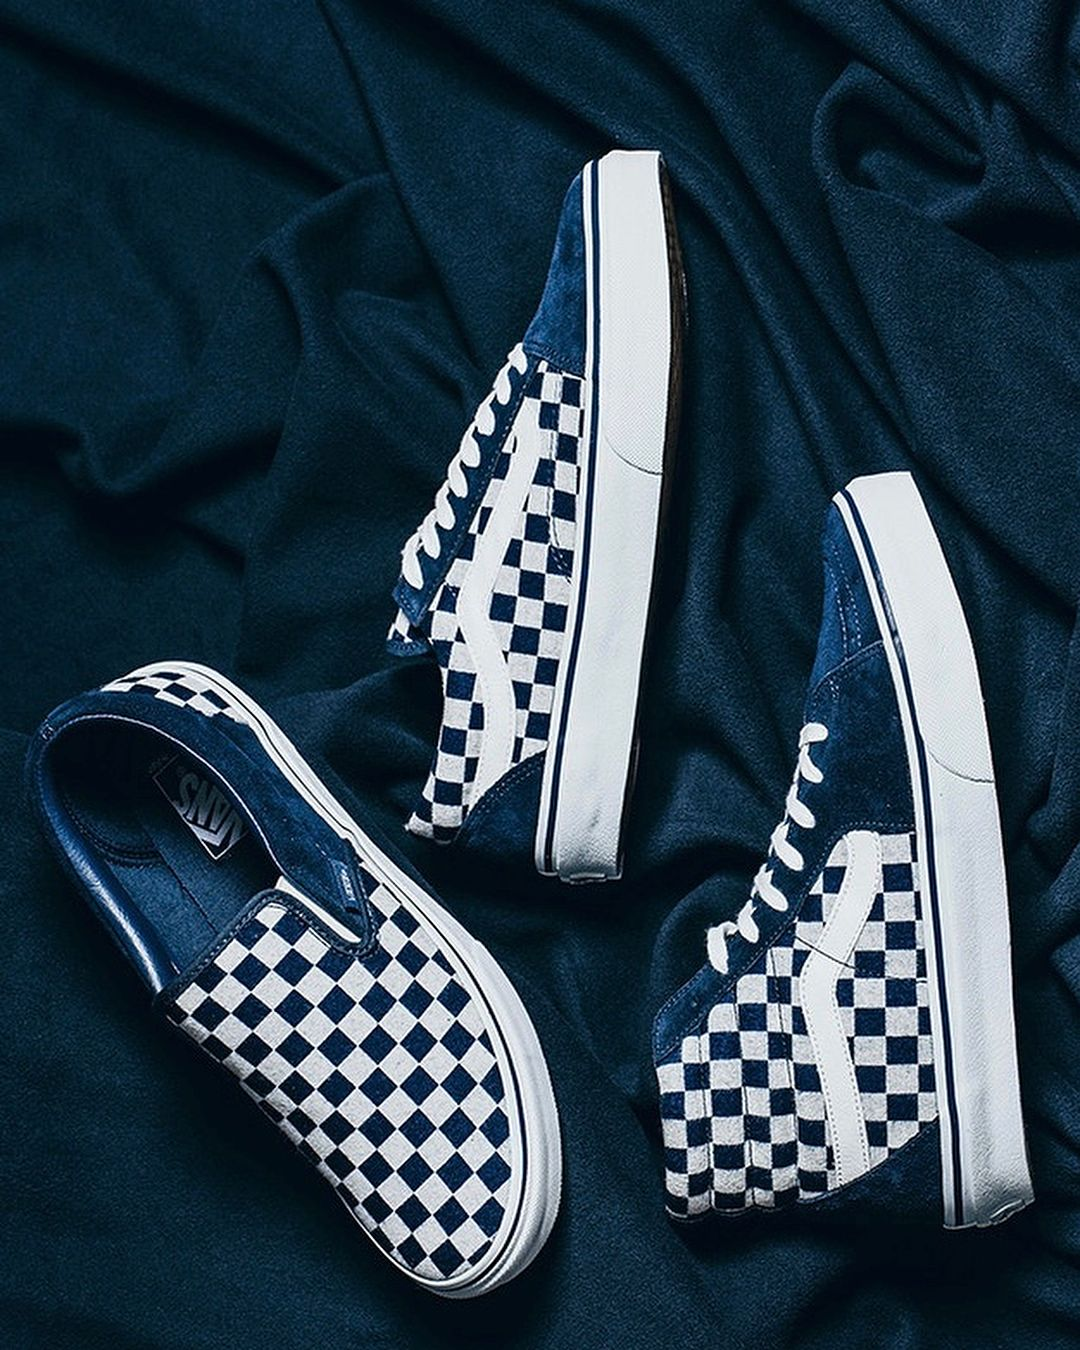 d35429f887 Swipe for a closer look at the  vansjapan limited edition  Indigo  Checkerboard  pack. Dropping Saturday